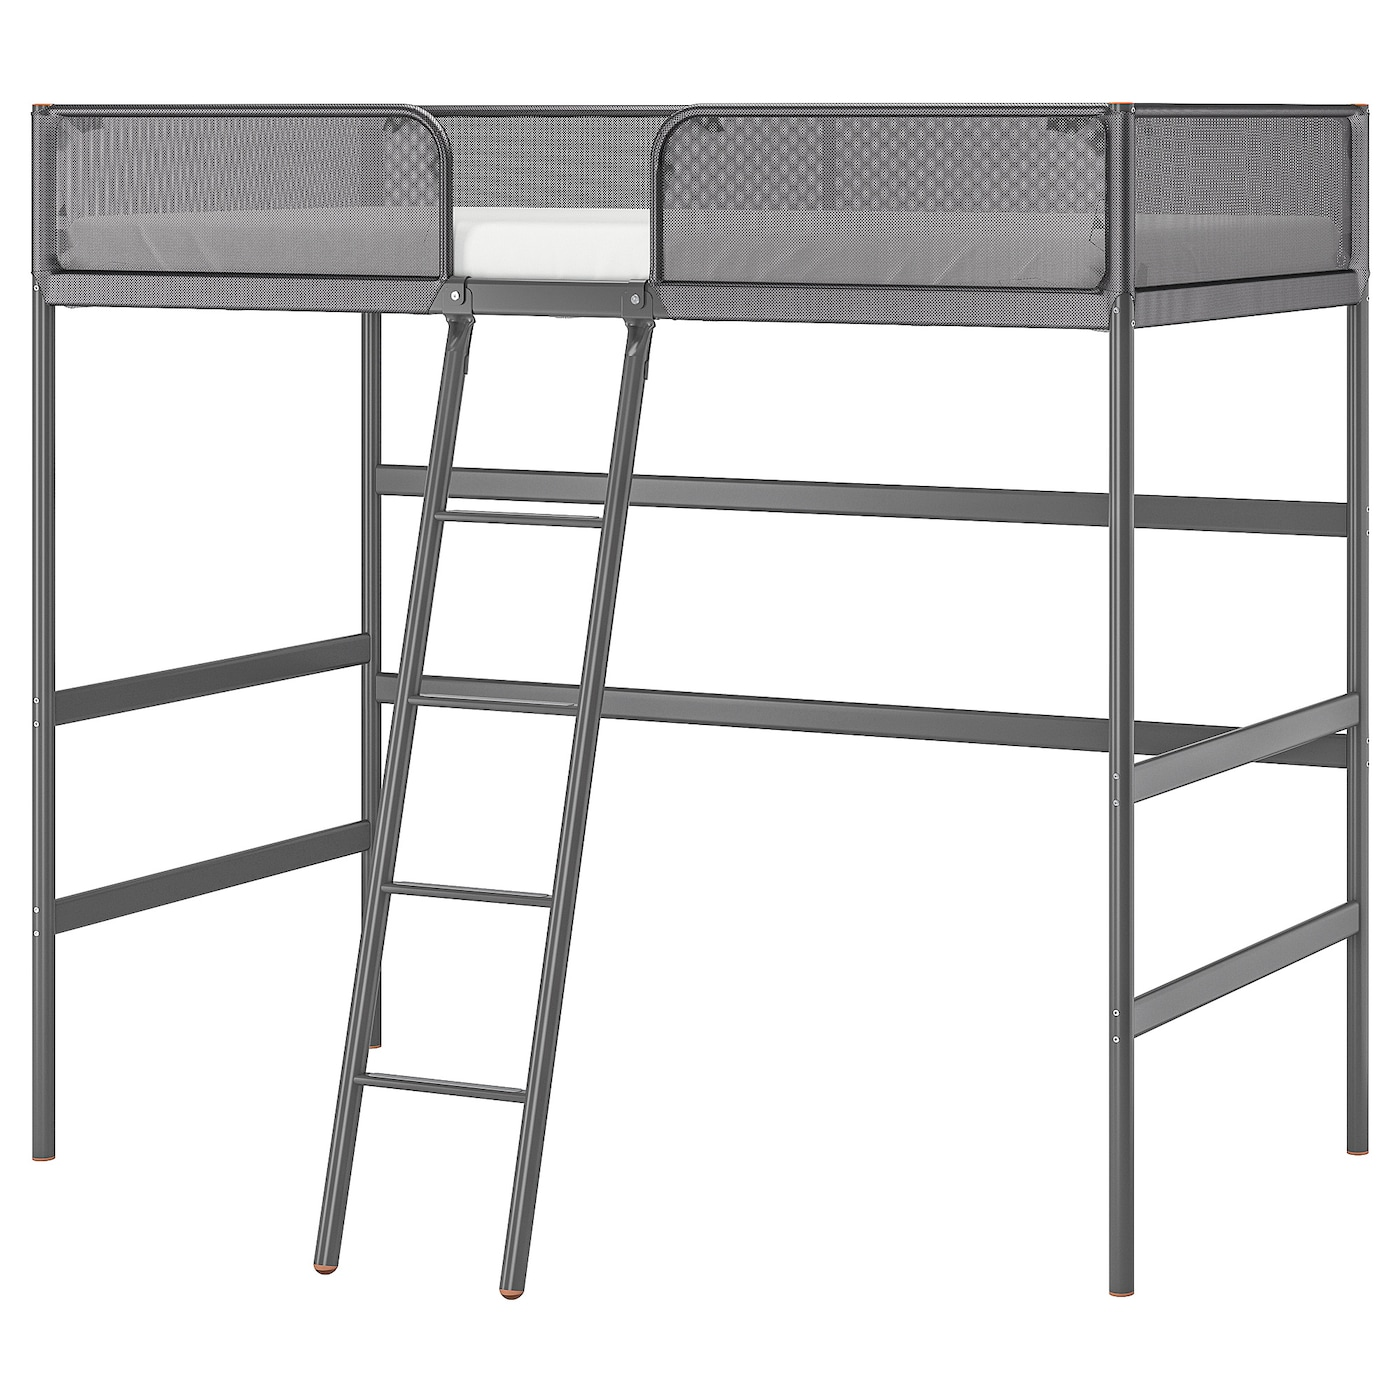 Ikea Bunk Beds Uk Cheaper Than Retail Price Buy Clothing Accessories And Lifestyle Products For Women Men